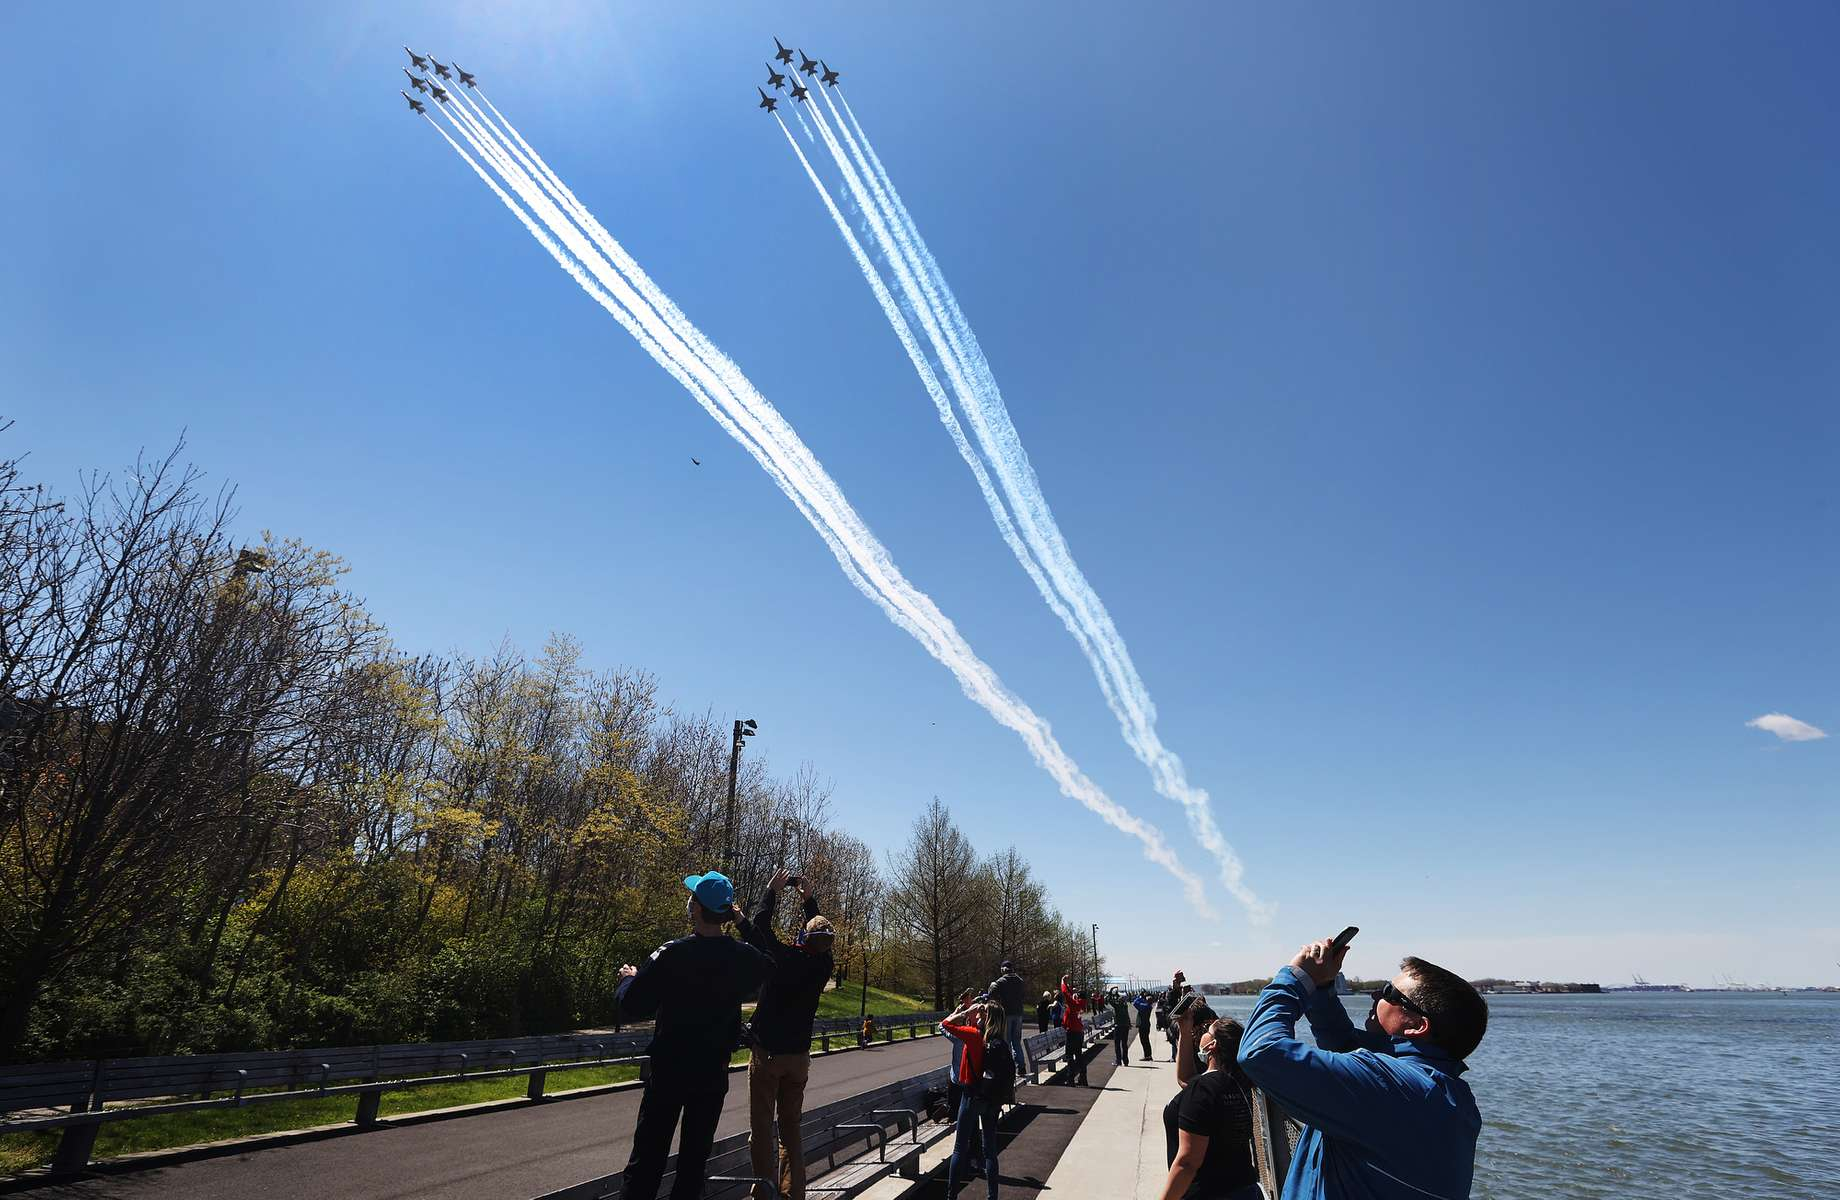 The U.S. Navy's Blue Angels and U.S. Air Force's Thunderbirds perform a flyover across Brooklyn Bridge park as a tribute to honor NYC COVID-19 frontline workers on April 28, 2020 in the Brooklyn borough of New York City.  The World Health Organization declared coronavirus (COVID-19) a global pandemic on March 11th.